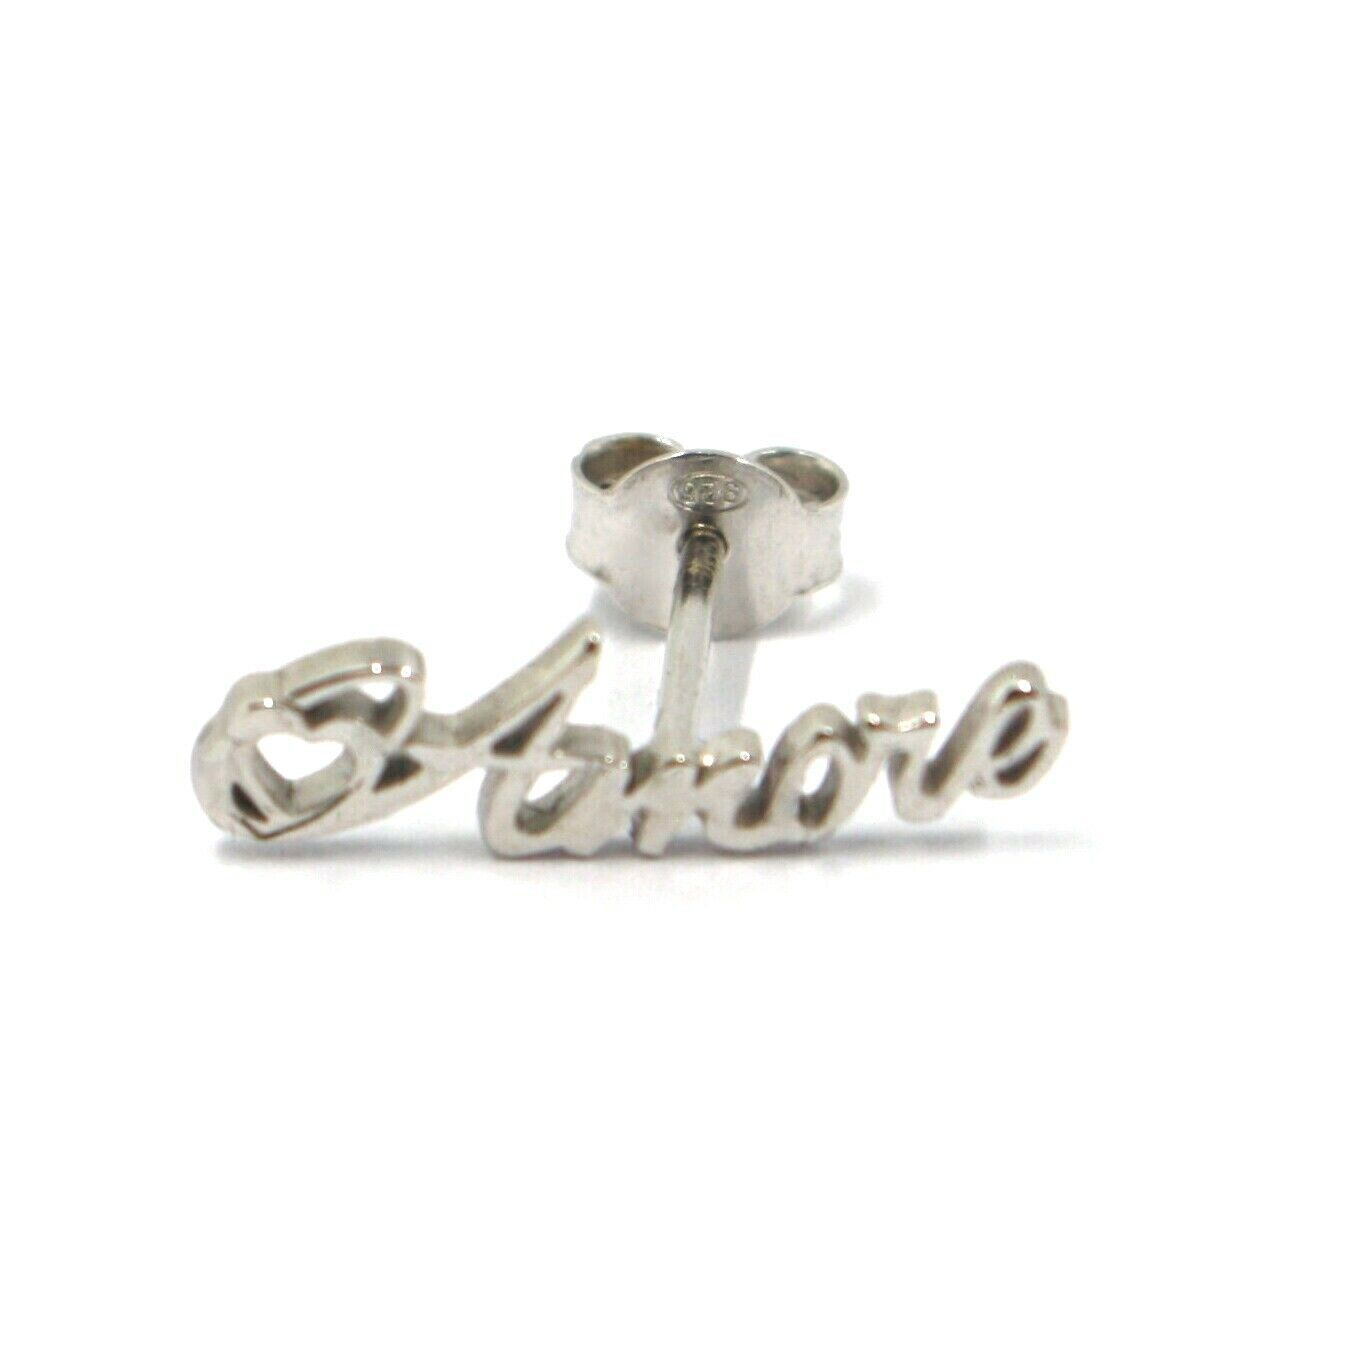 925 STERLING SILVER EARRINGS, WRITTEN AMORE, LOVE, HEART, MADE IN ITALY